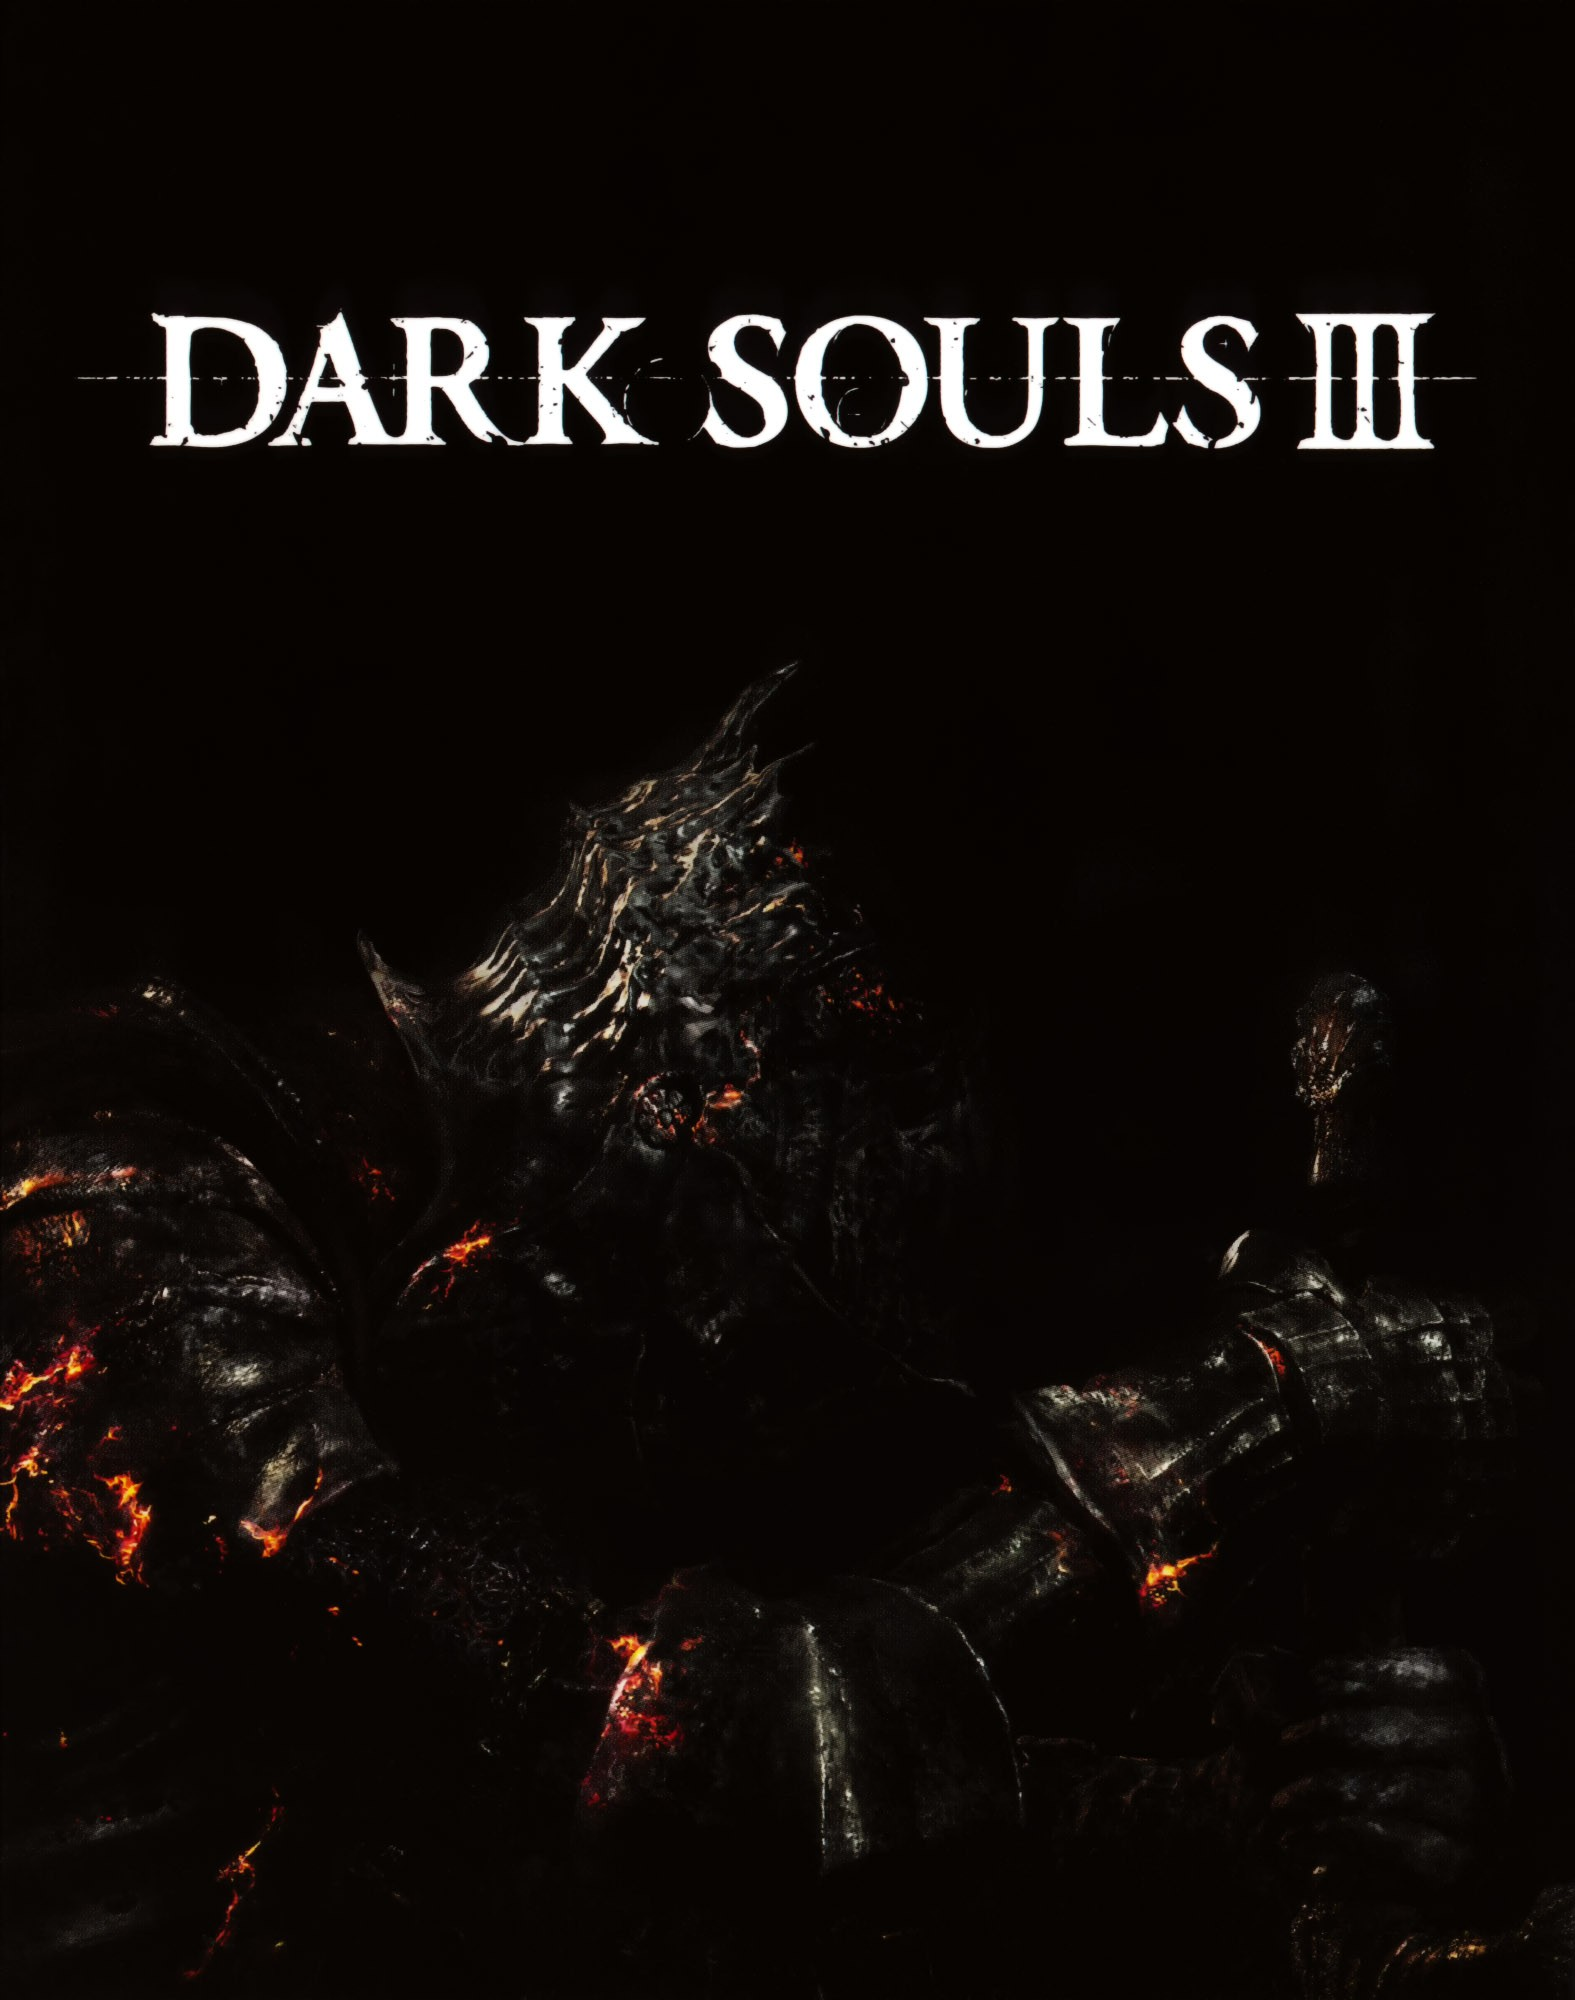 DARK SOULS III THE FIRE FADES EDITION Original Soundtrack 黑暗之魂3 THE FIRE FADES OST